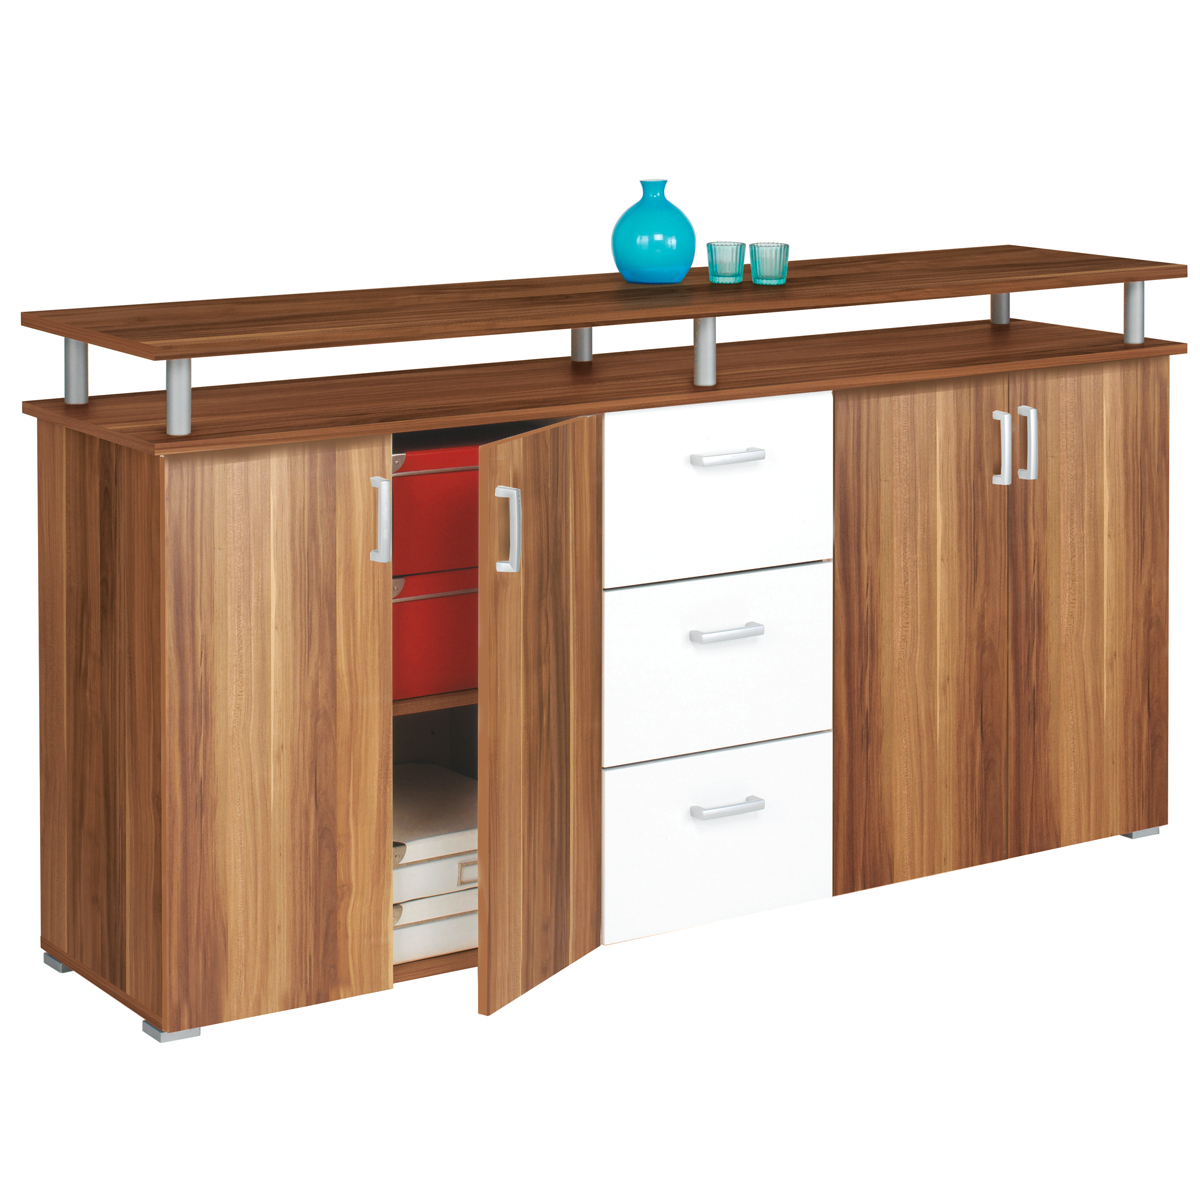 kommode sideboard swift anrichte schrank mit t ren schubk sten ebay. Black Bedroom Furniture Sets. Home Design Ideas